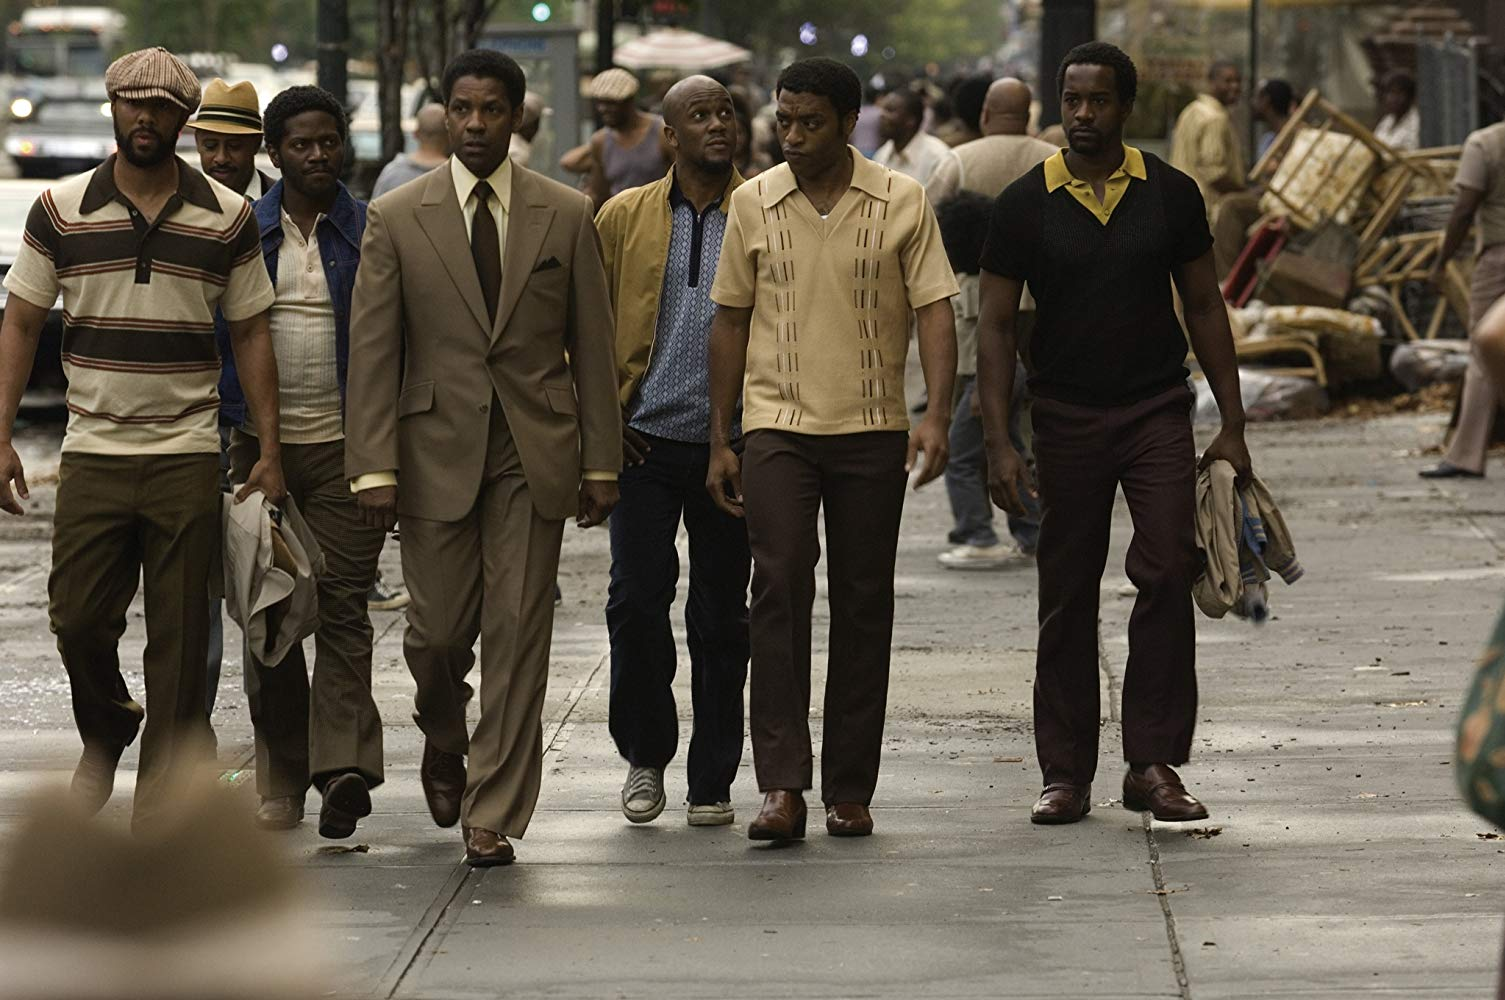 American Gangster Receives Several Nominations and Awards